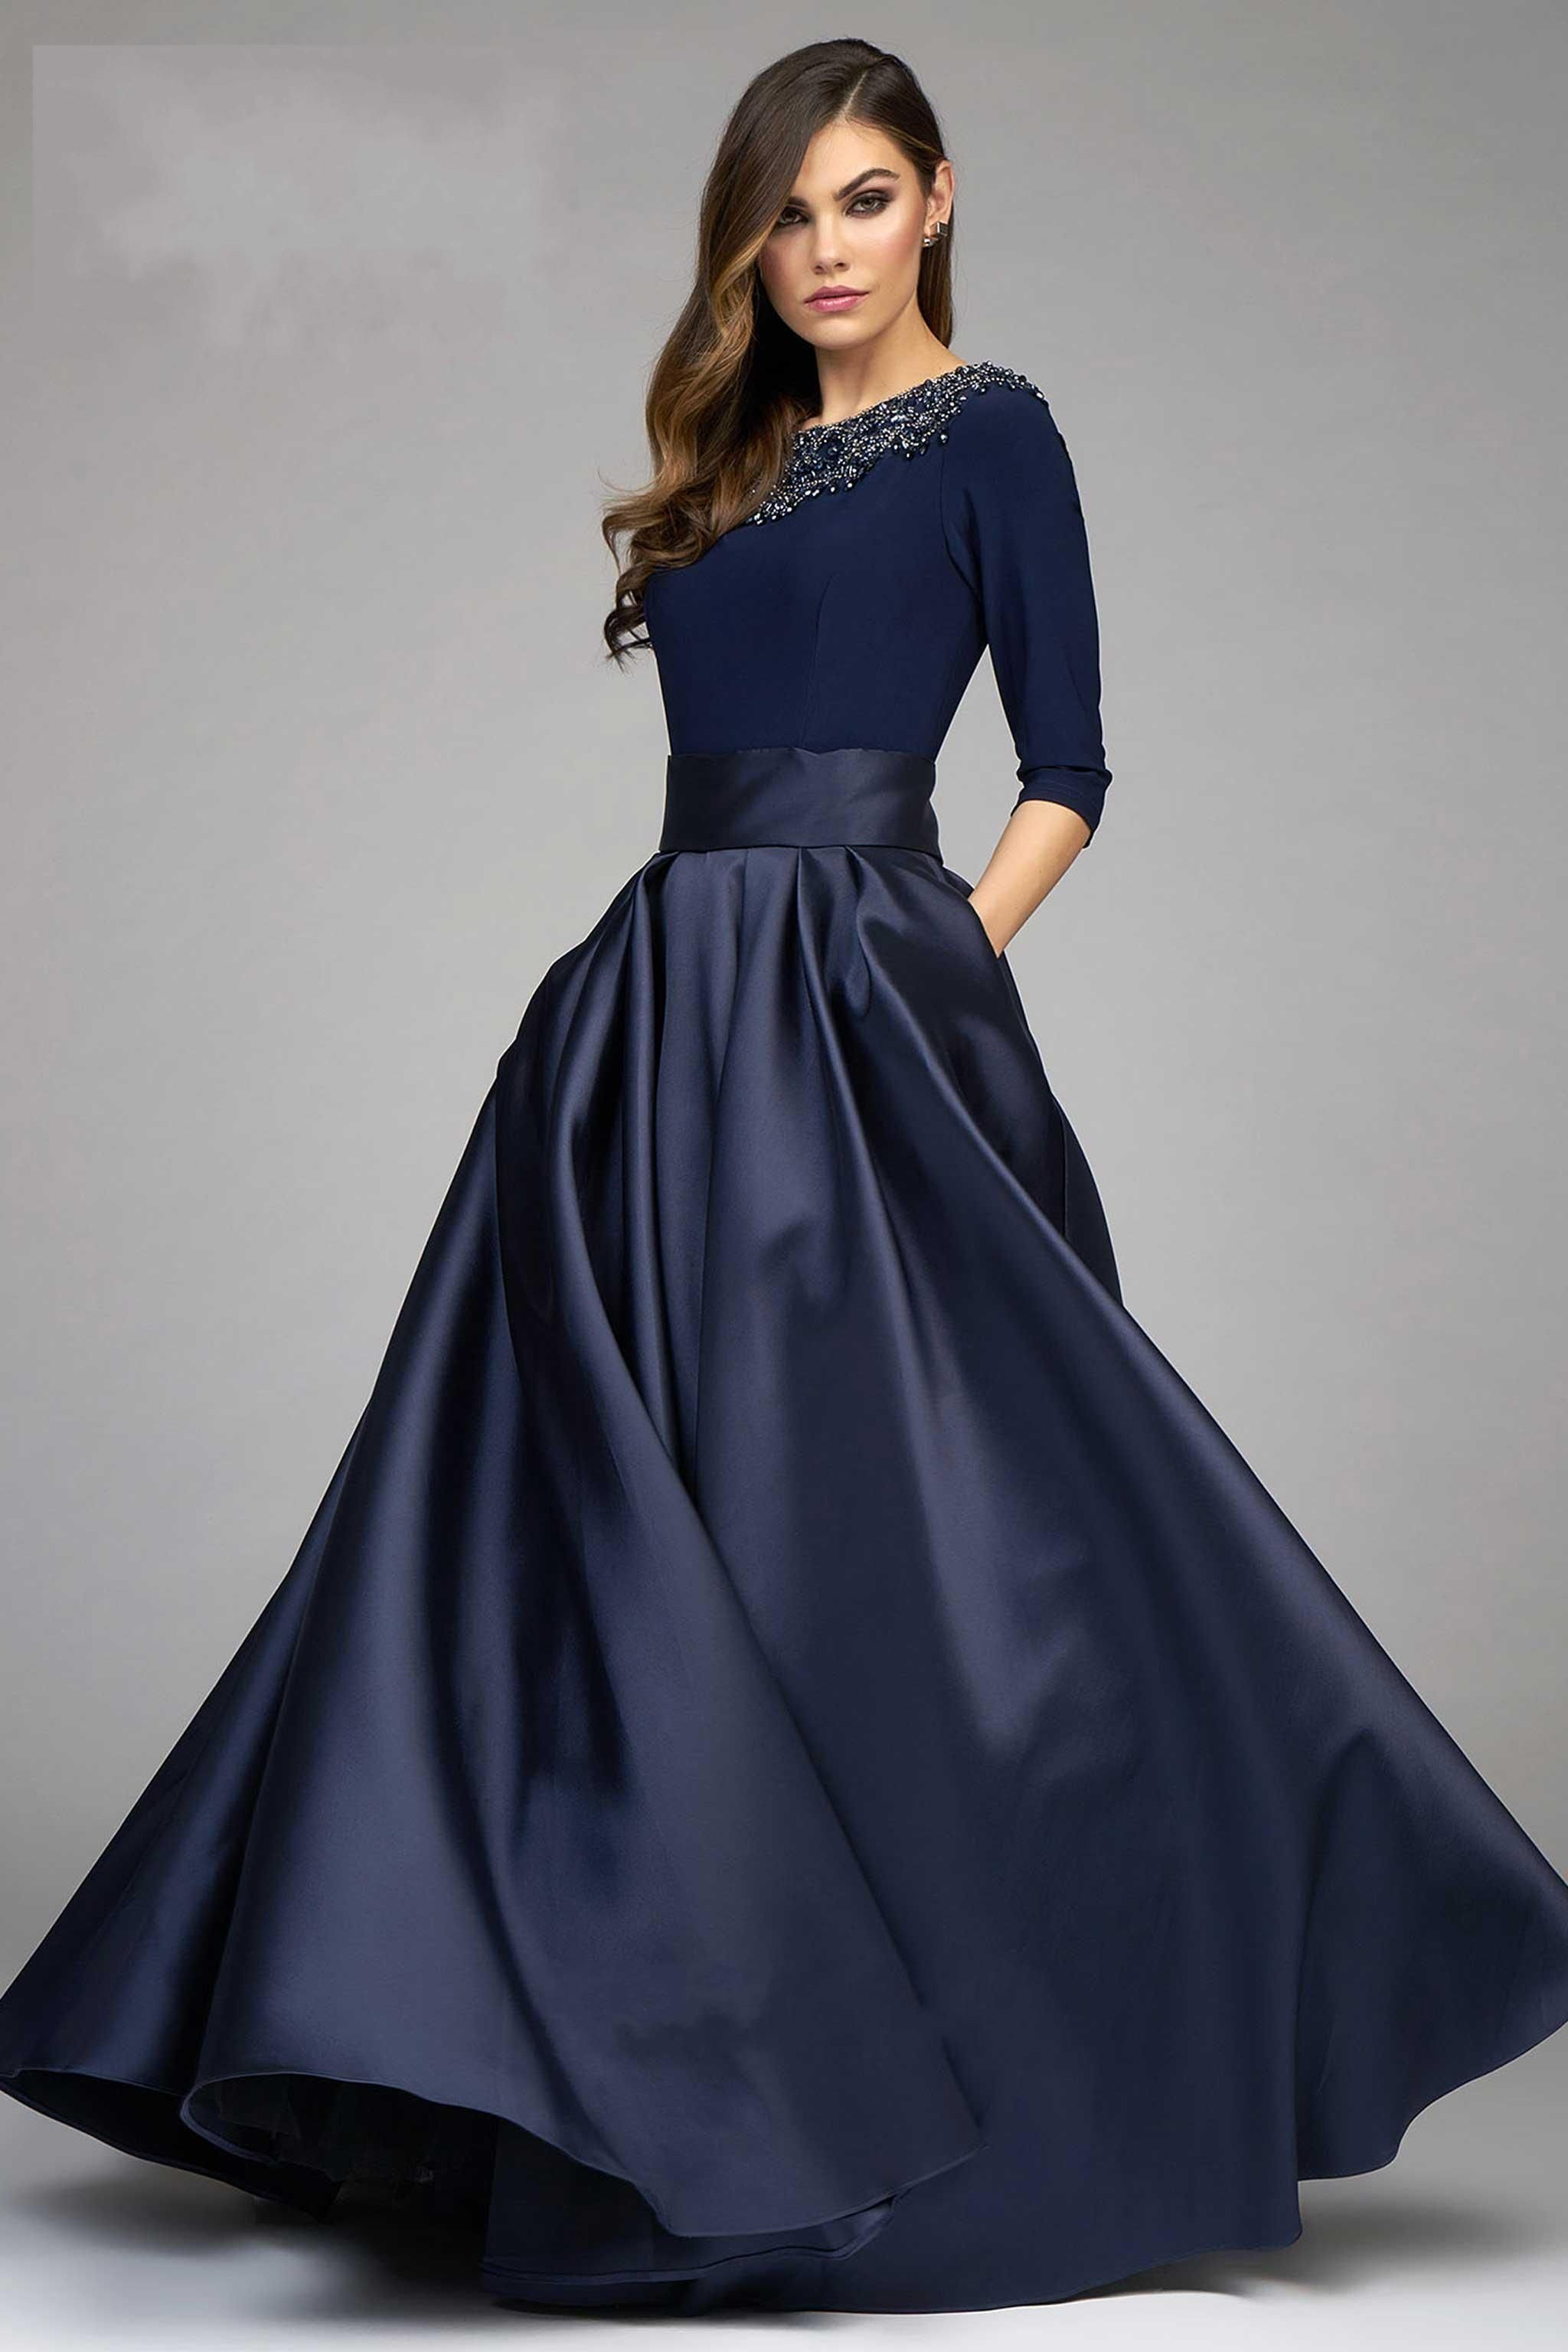 2017 fashion ball gown dresses evening wear navy blue long for Long sleeve dresses to wear to a wedding